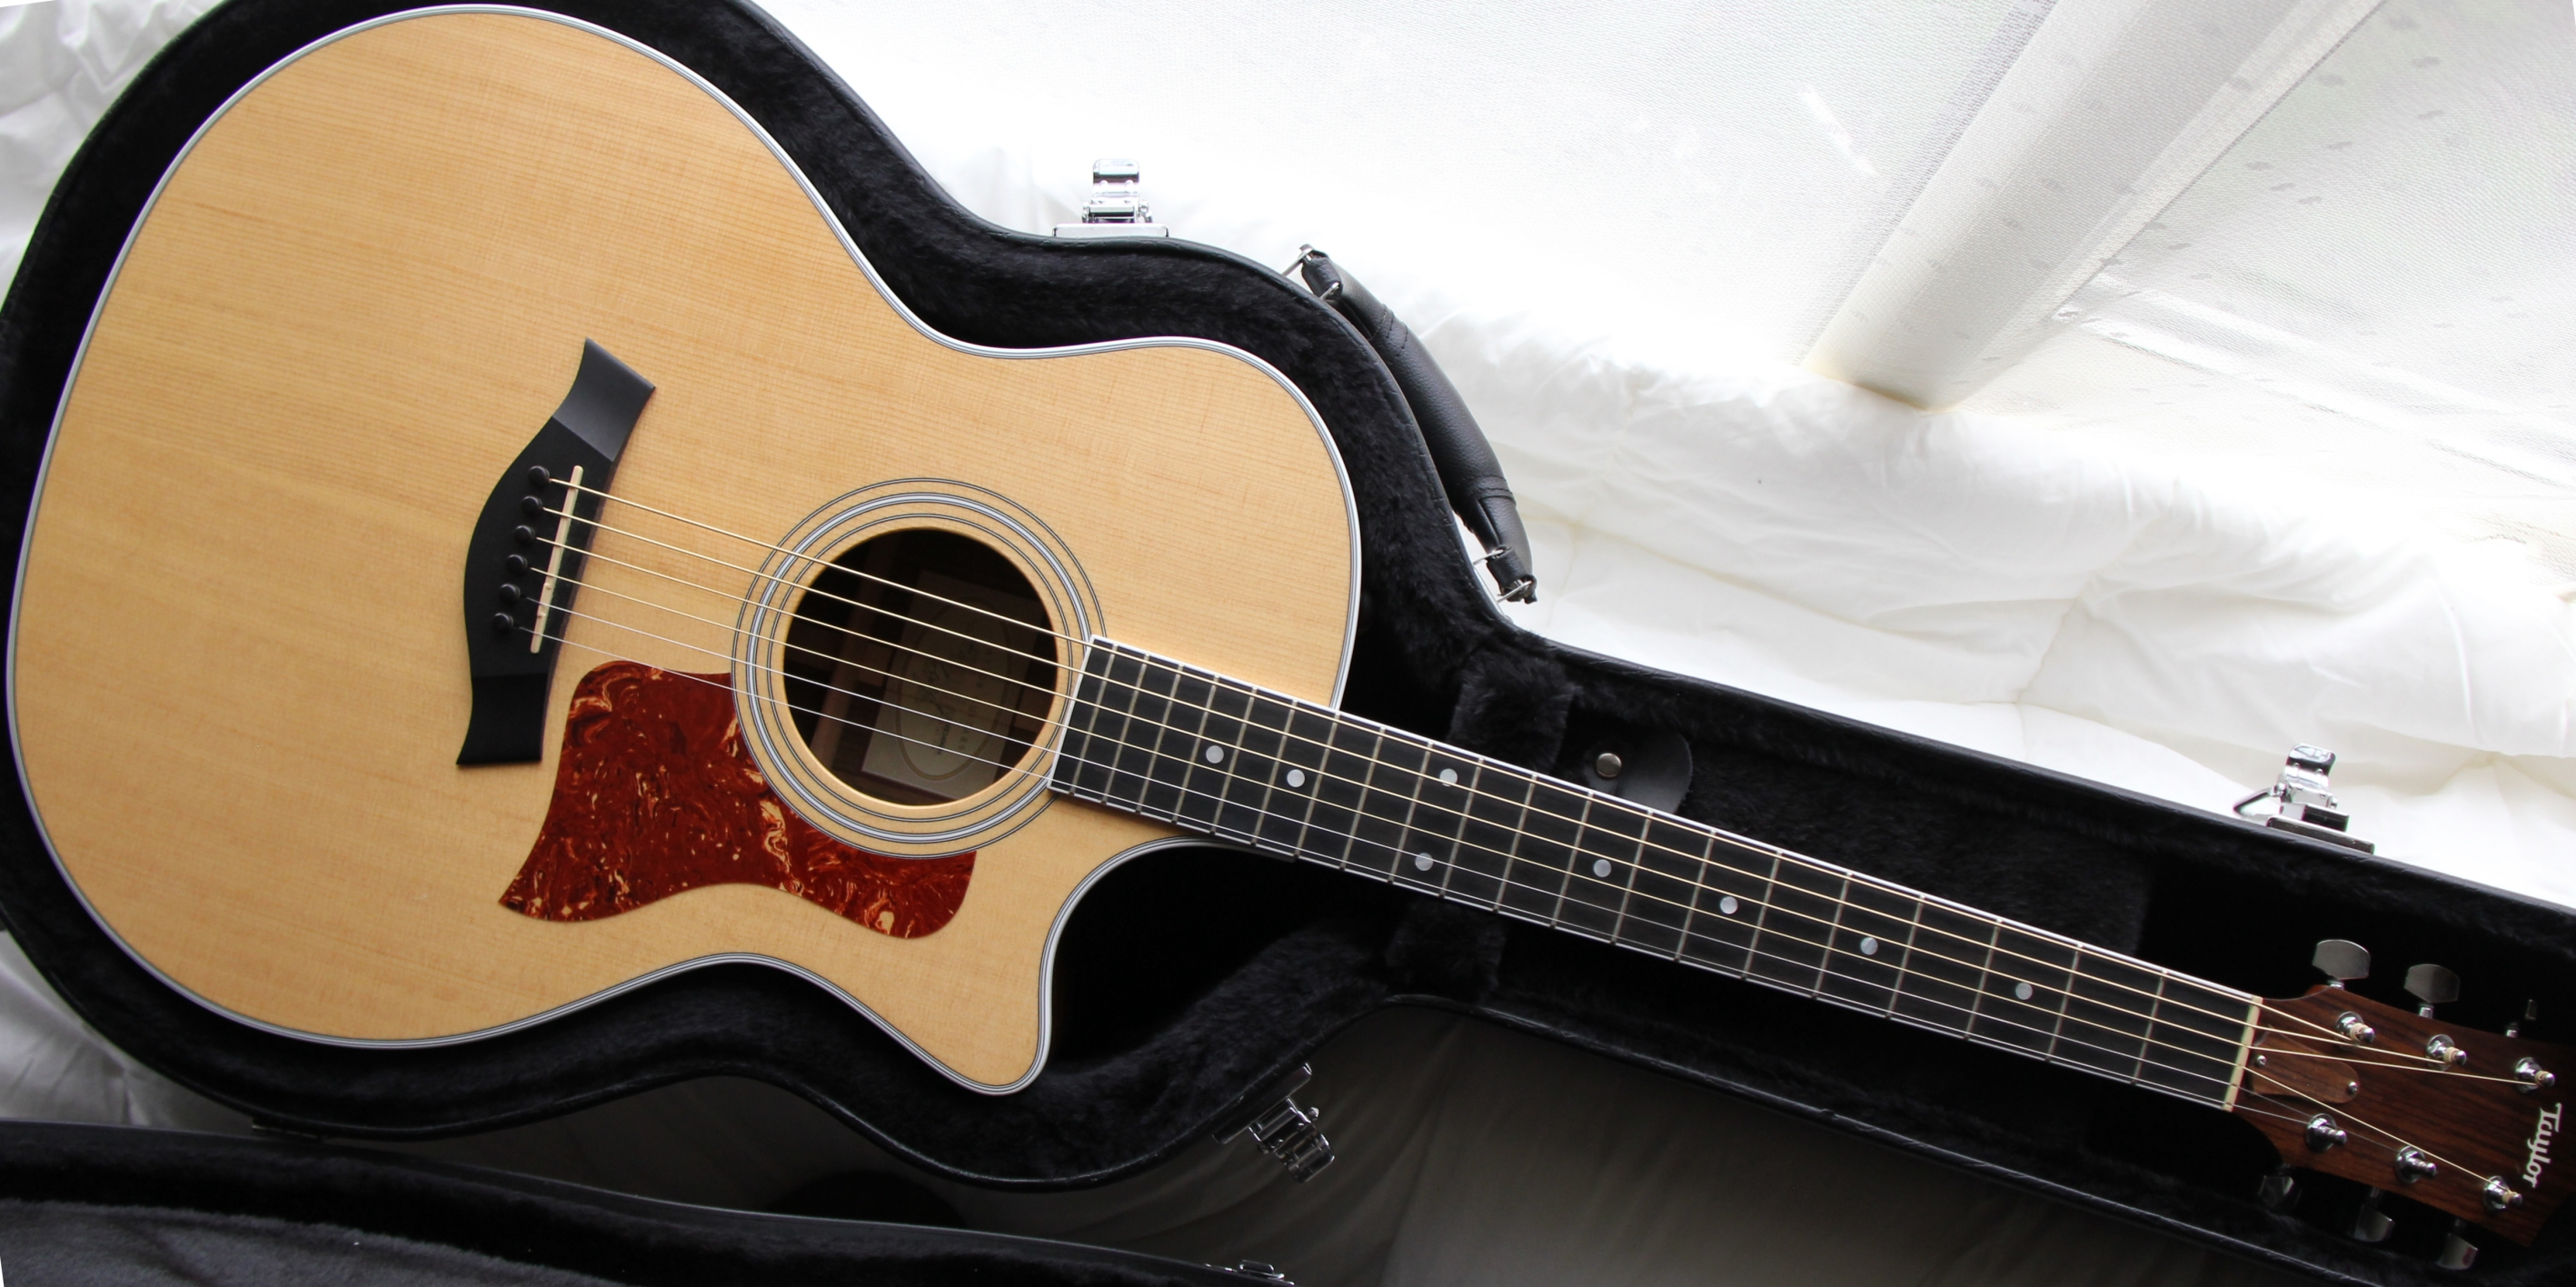 Taylor 414ce Electro Acoustic Guitar